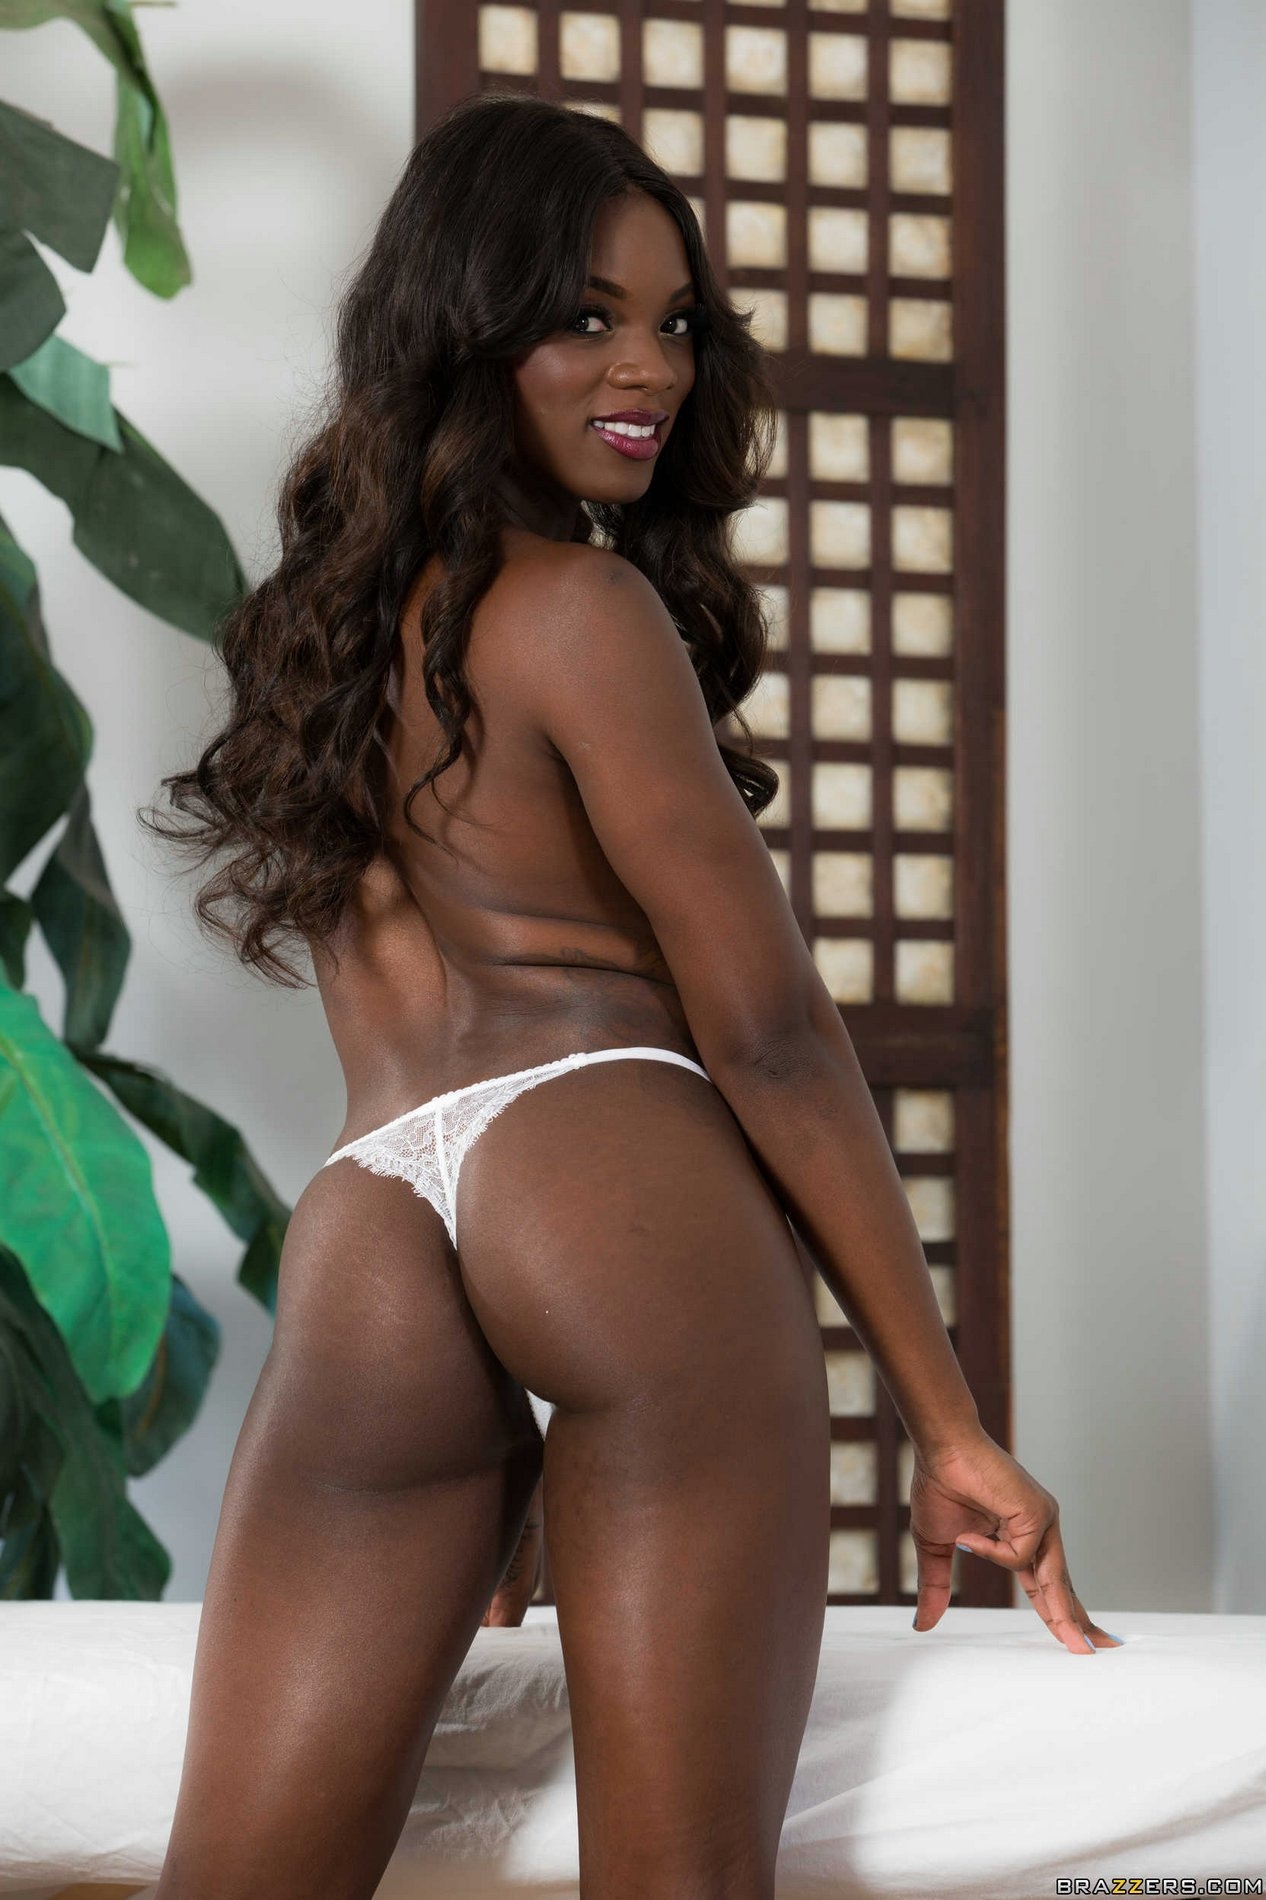 Beauty shows all softcore eyecandy kd 4